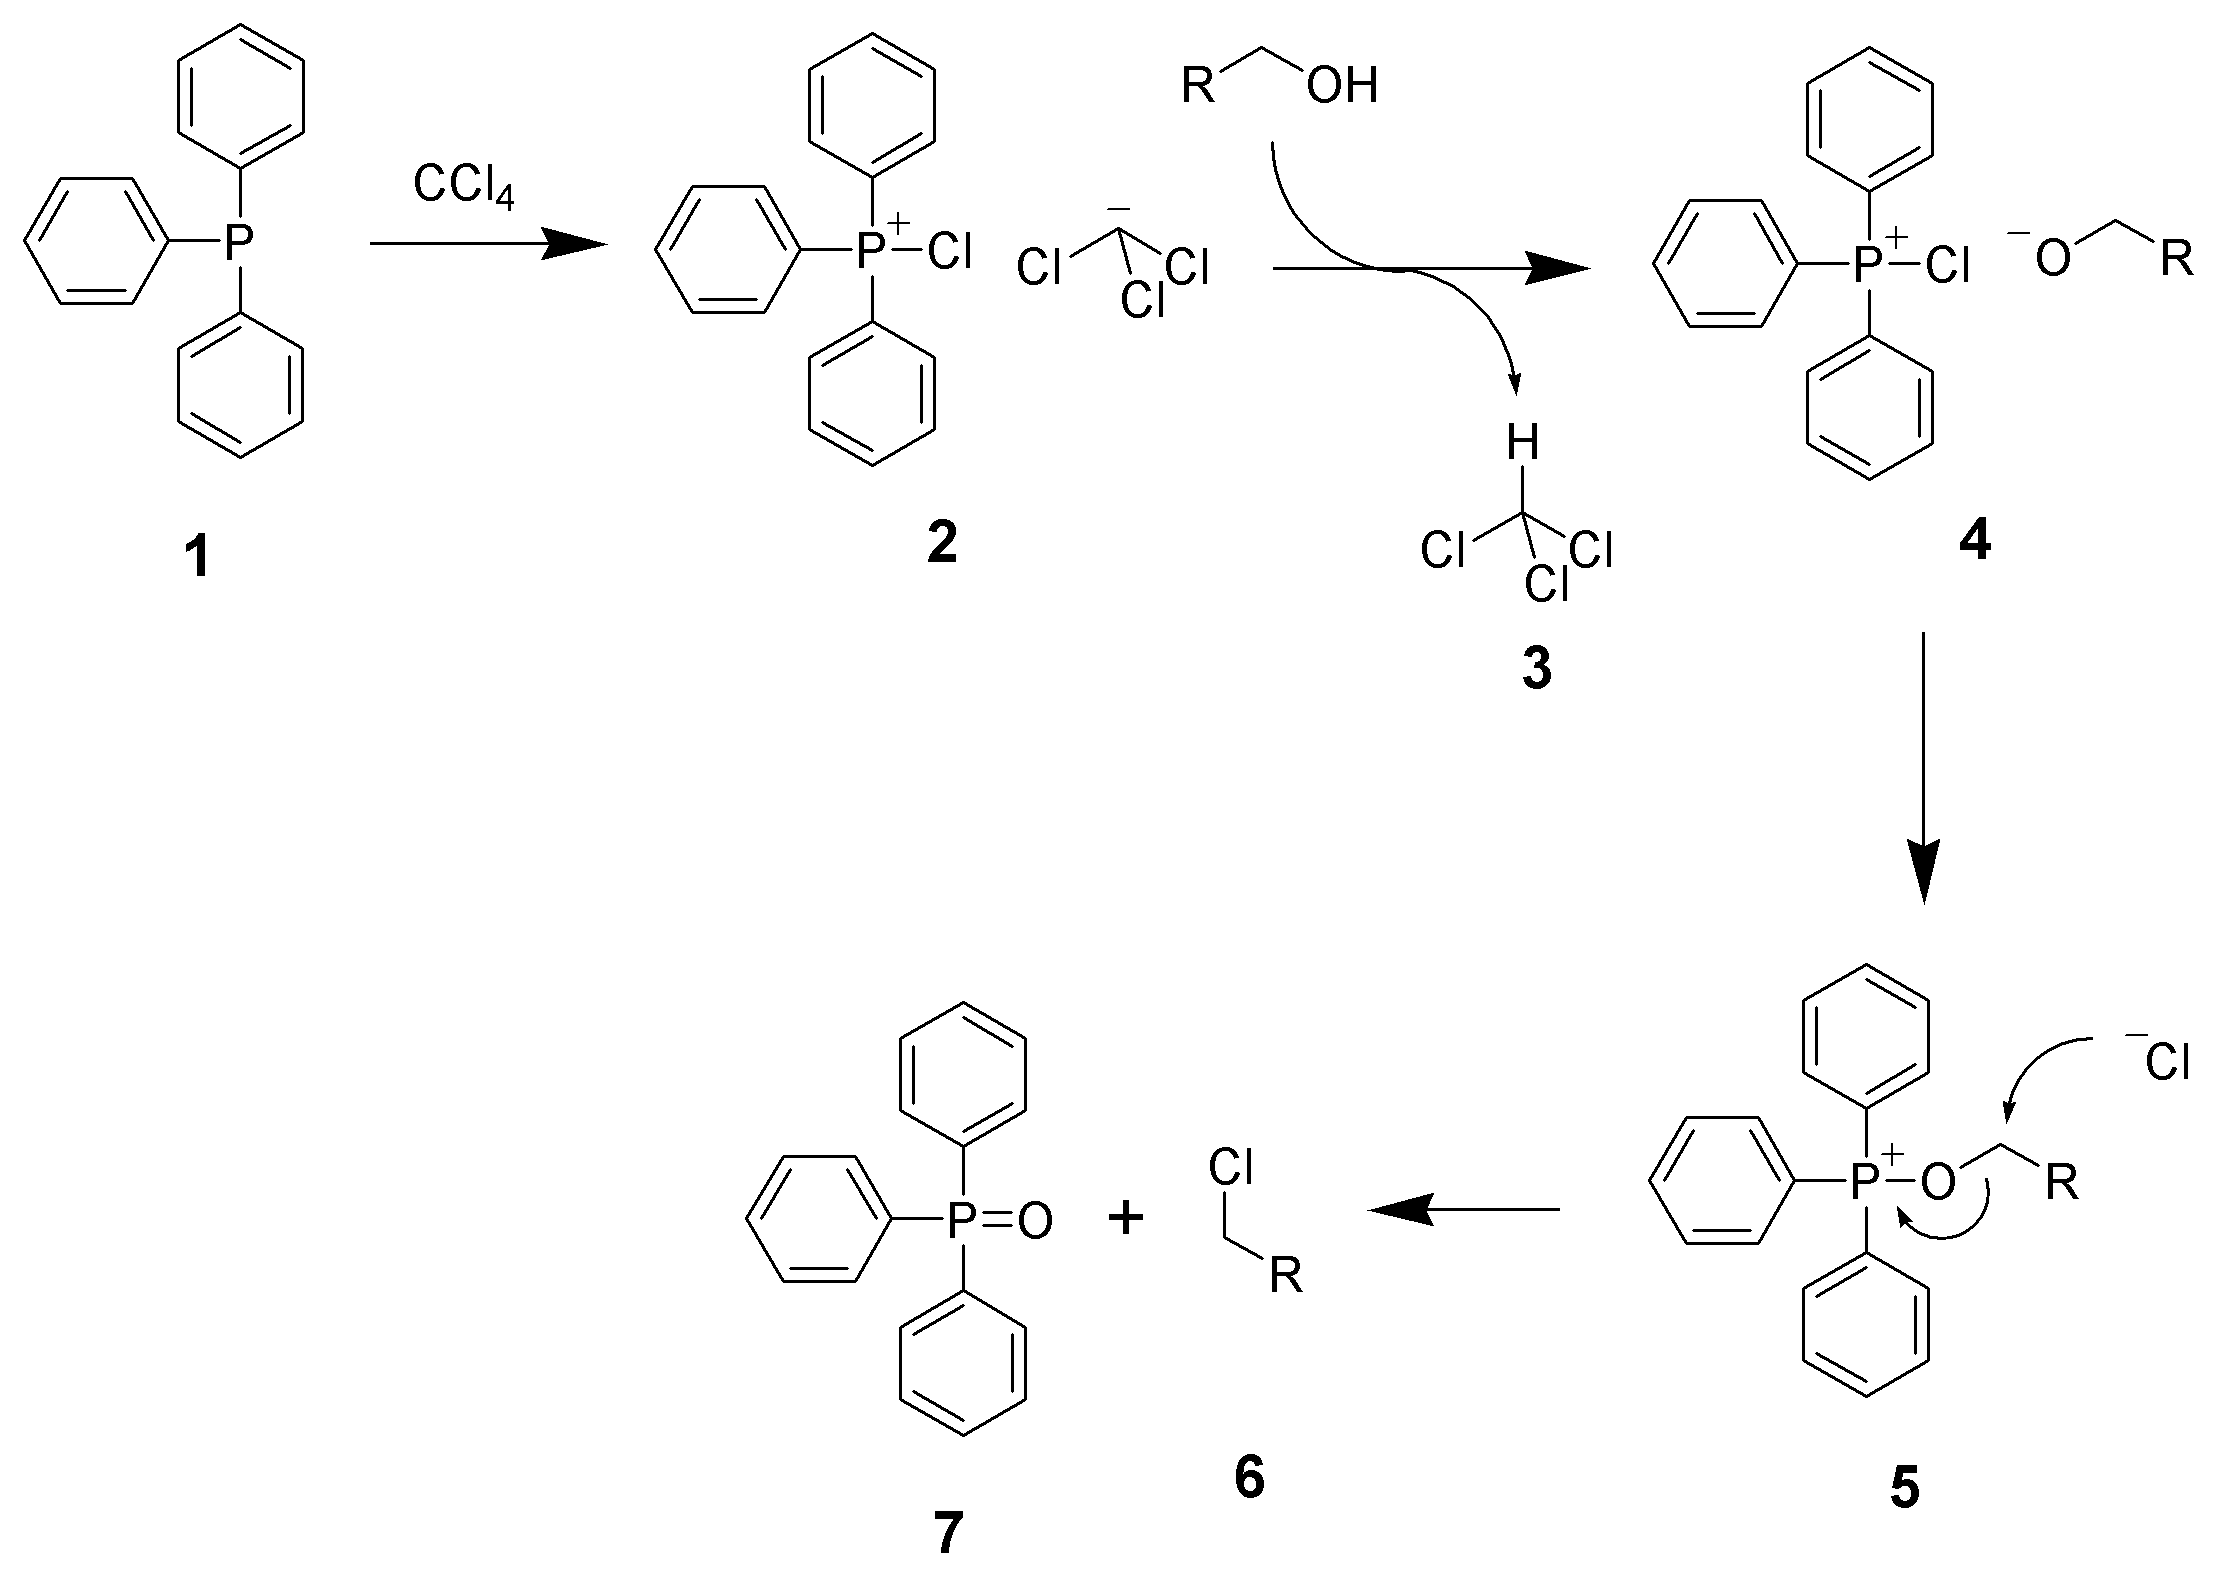 File:Appel Reaction Mechanism.png - Wikipedia, the free encyclopedia